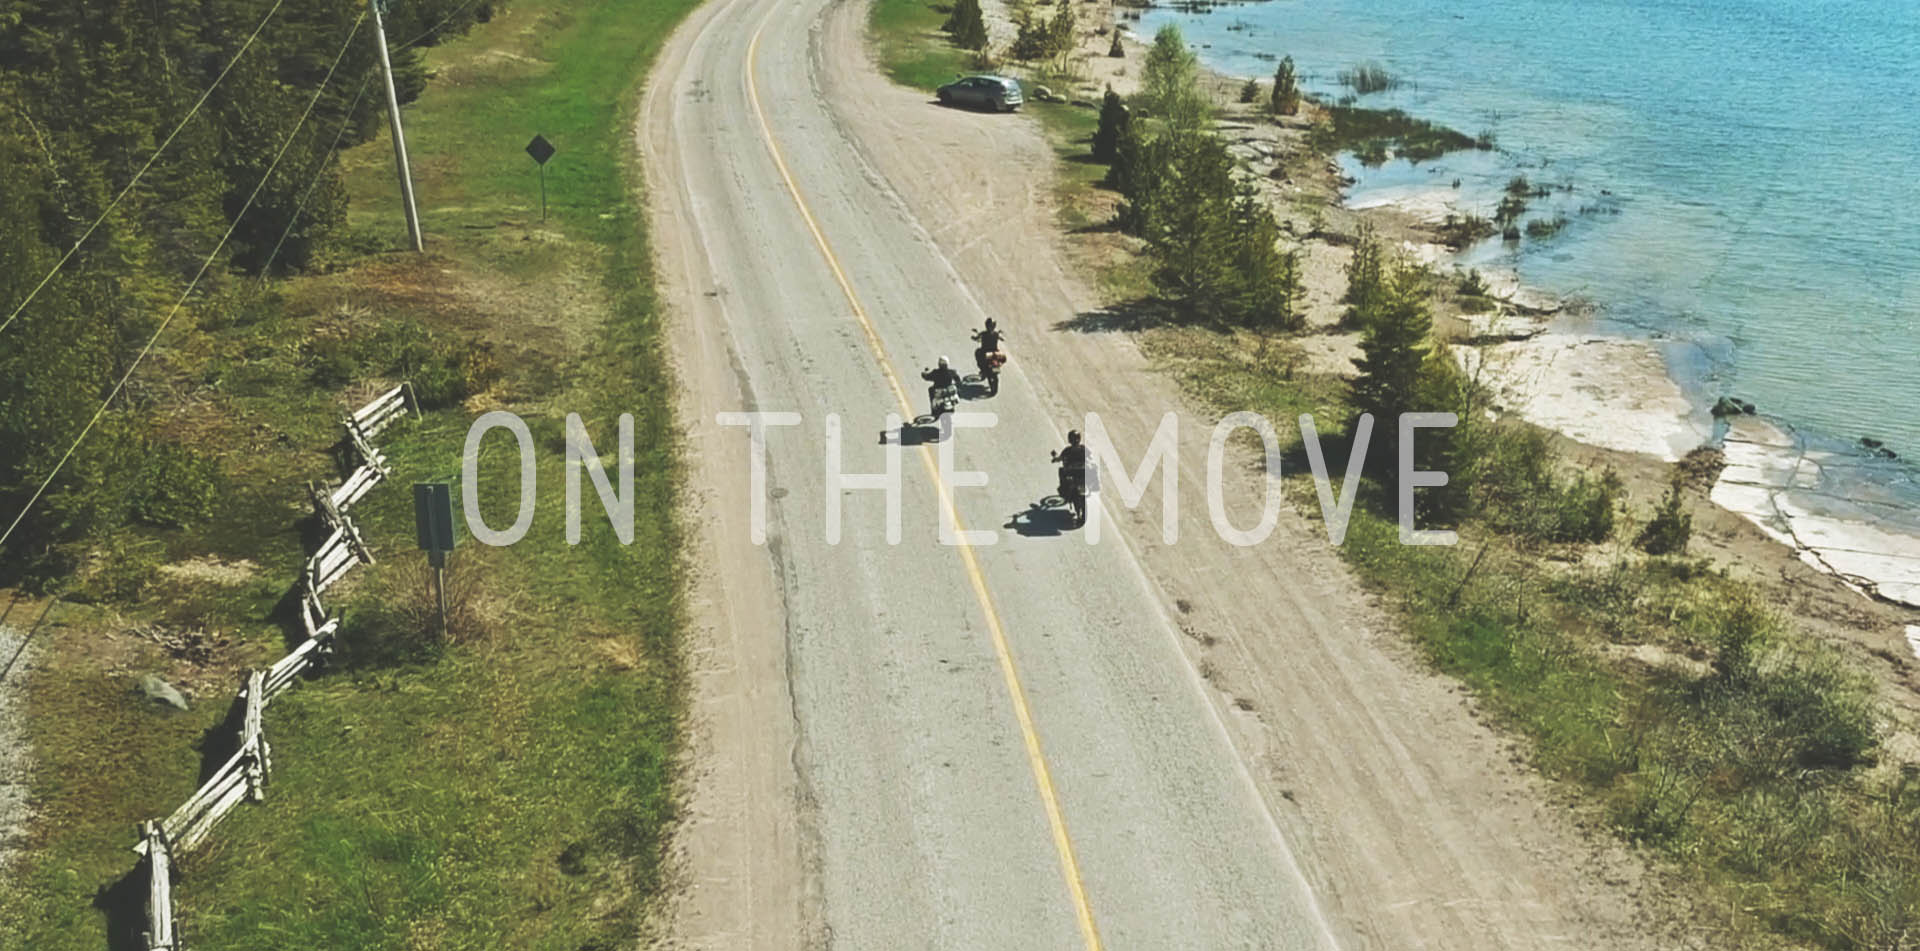 motorcycle on the move